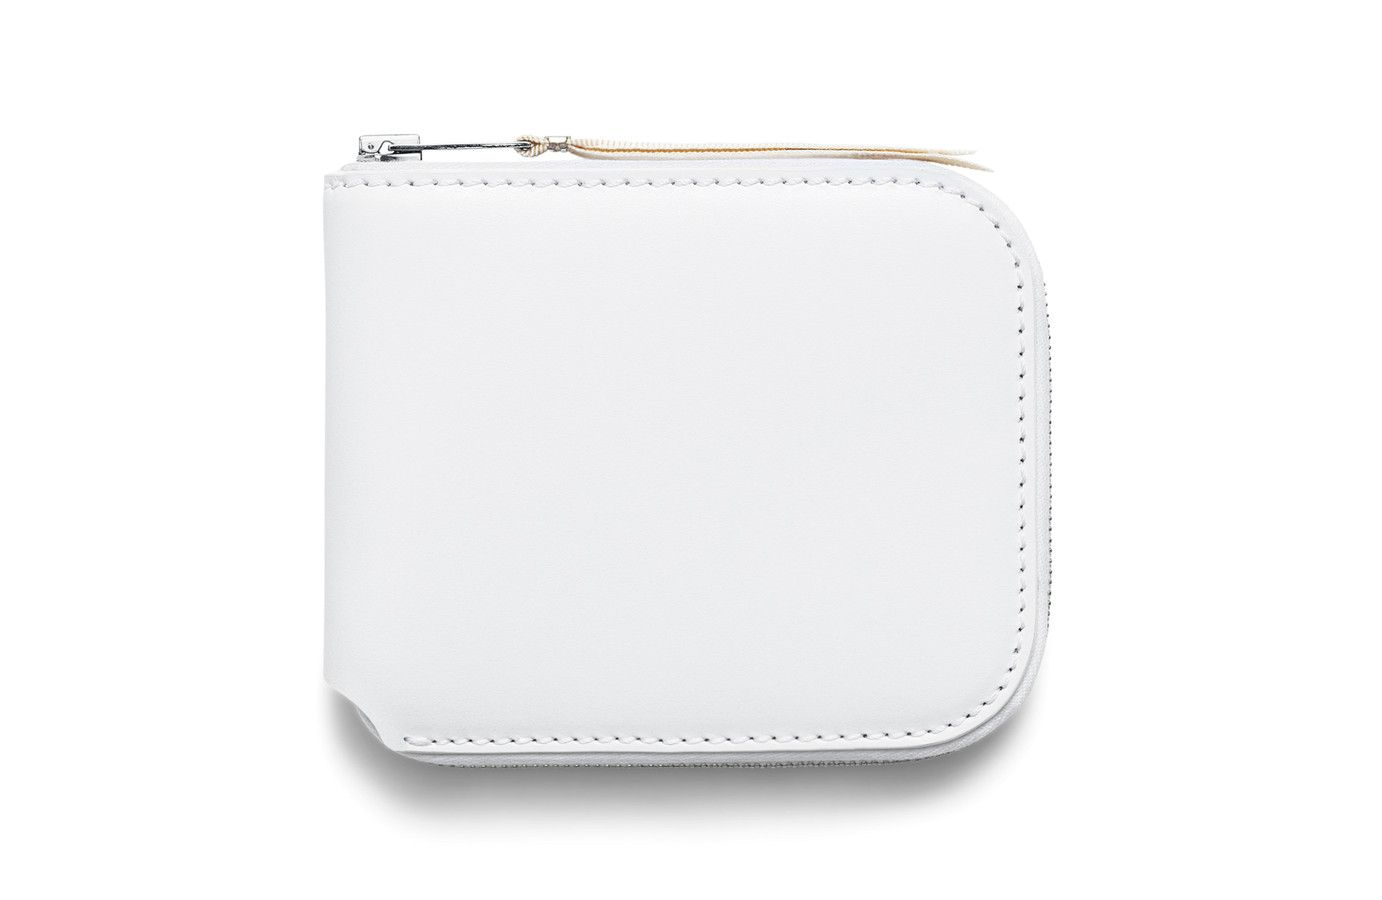 Acne Studios Kei white Small zippered wallet   customkid   Pinterest f689ece7946